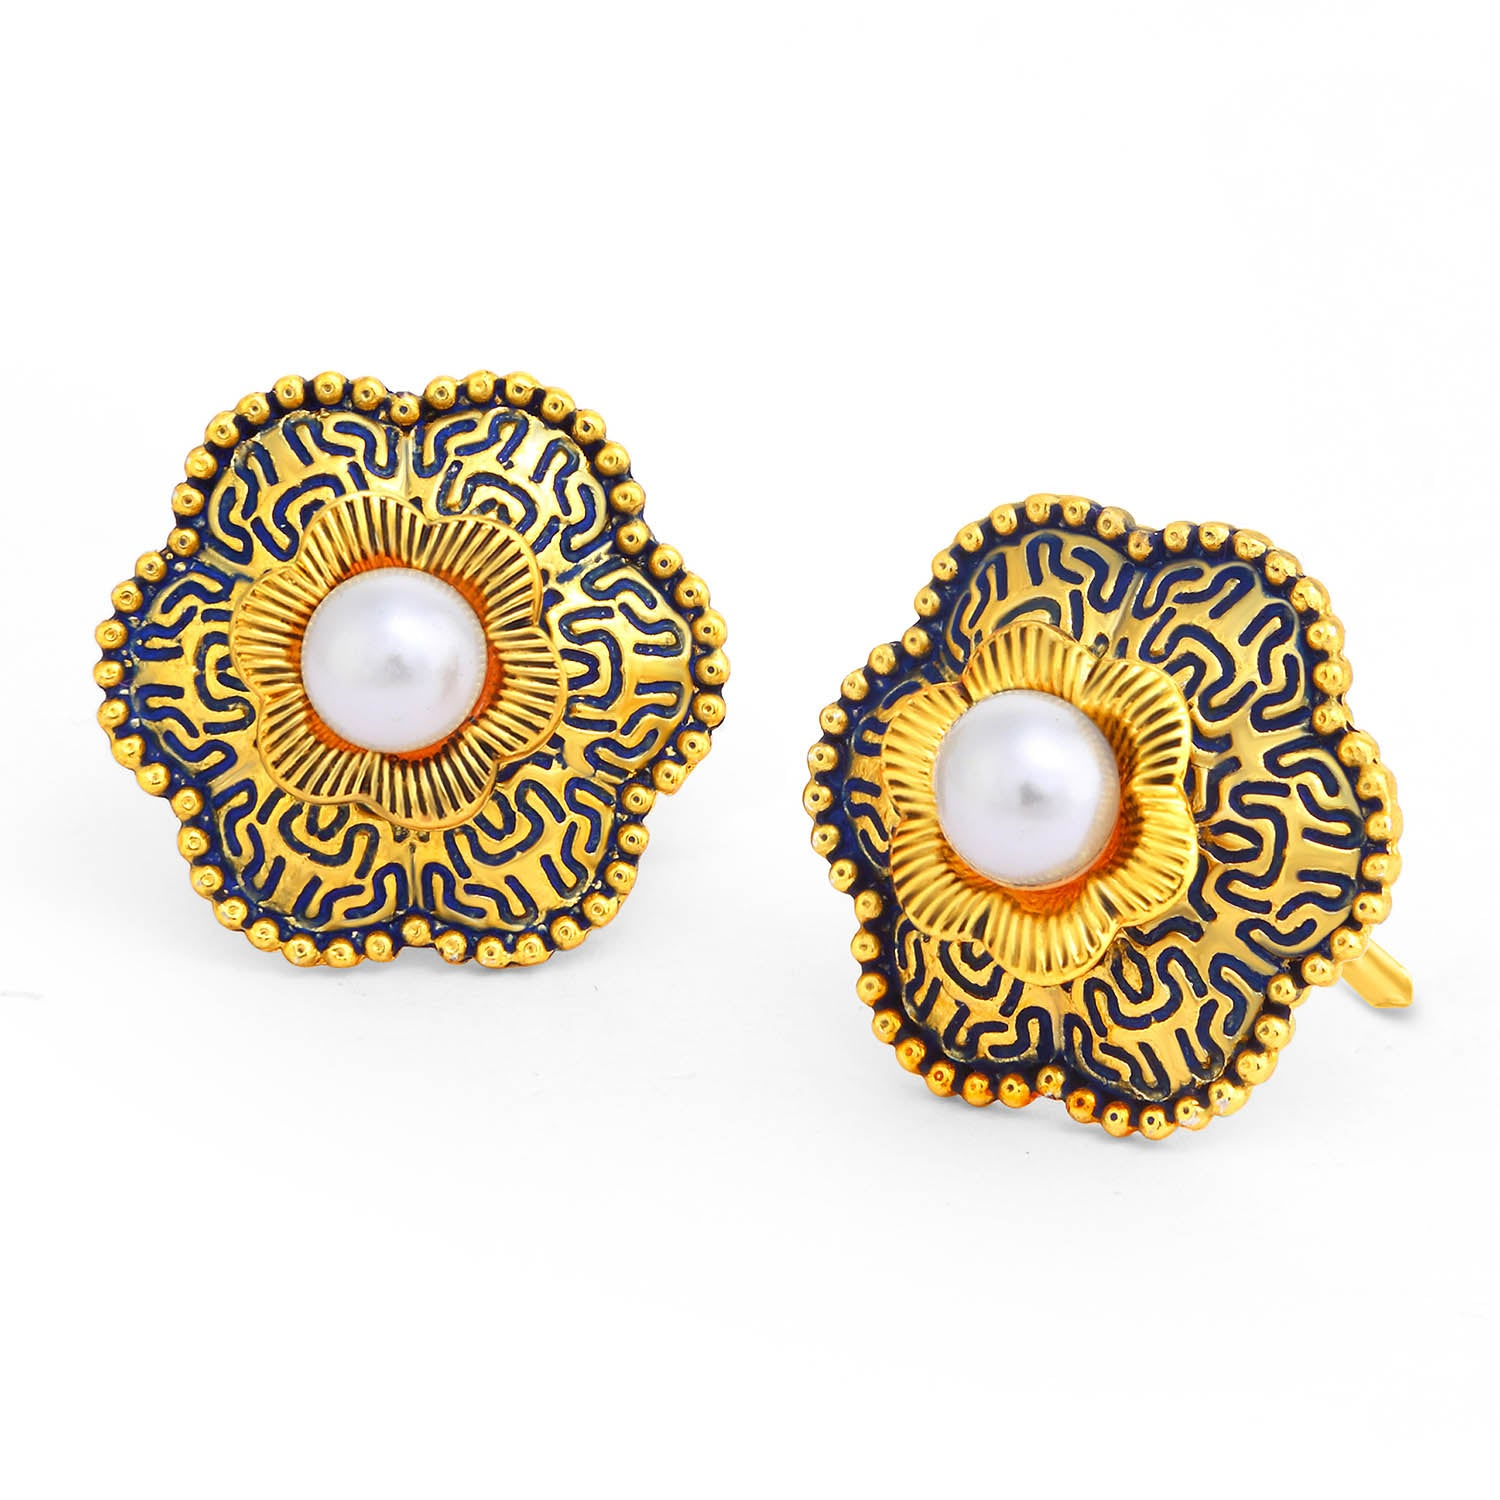 Sukkhi Classy Floral Gold Plated Pearl Purple Mint Meena Collection Stud Earring For Women-SUKKHI1-Earring